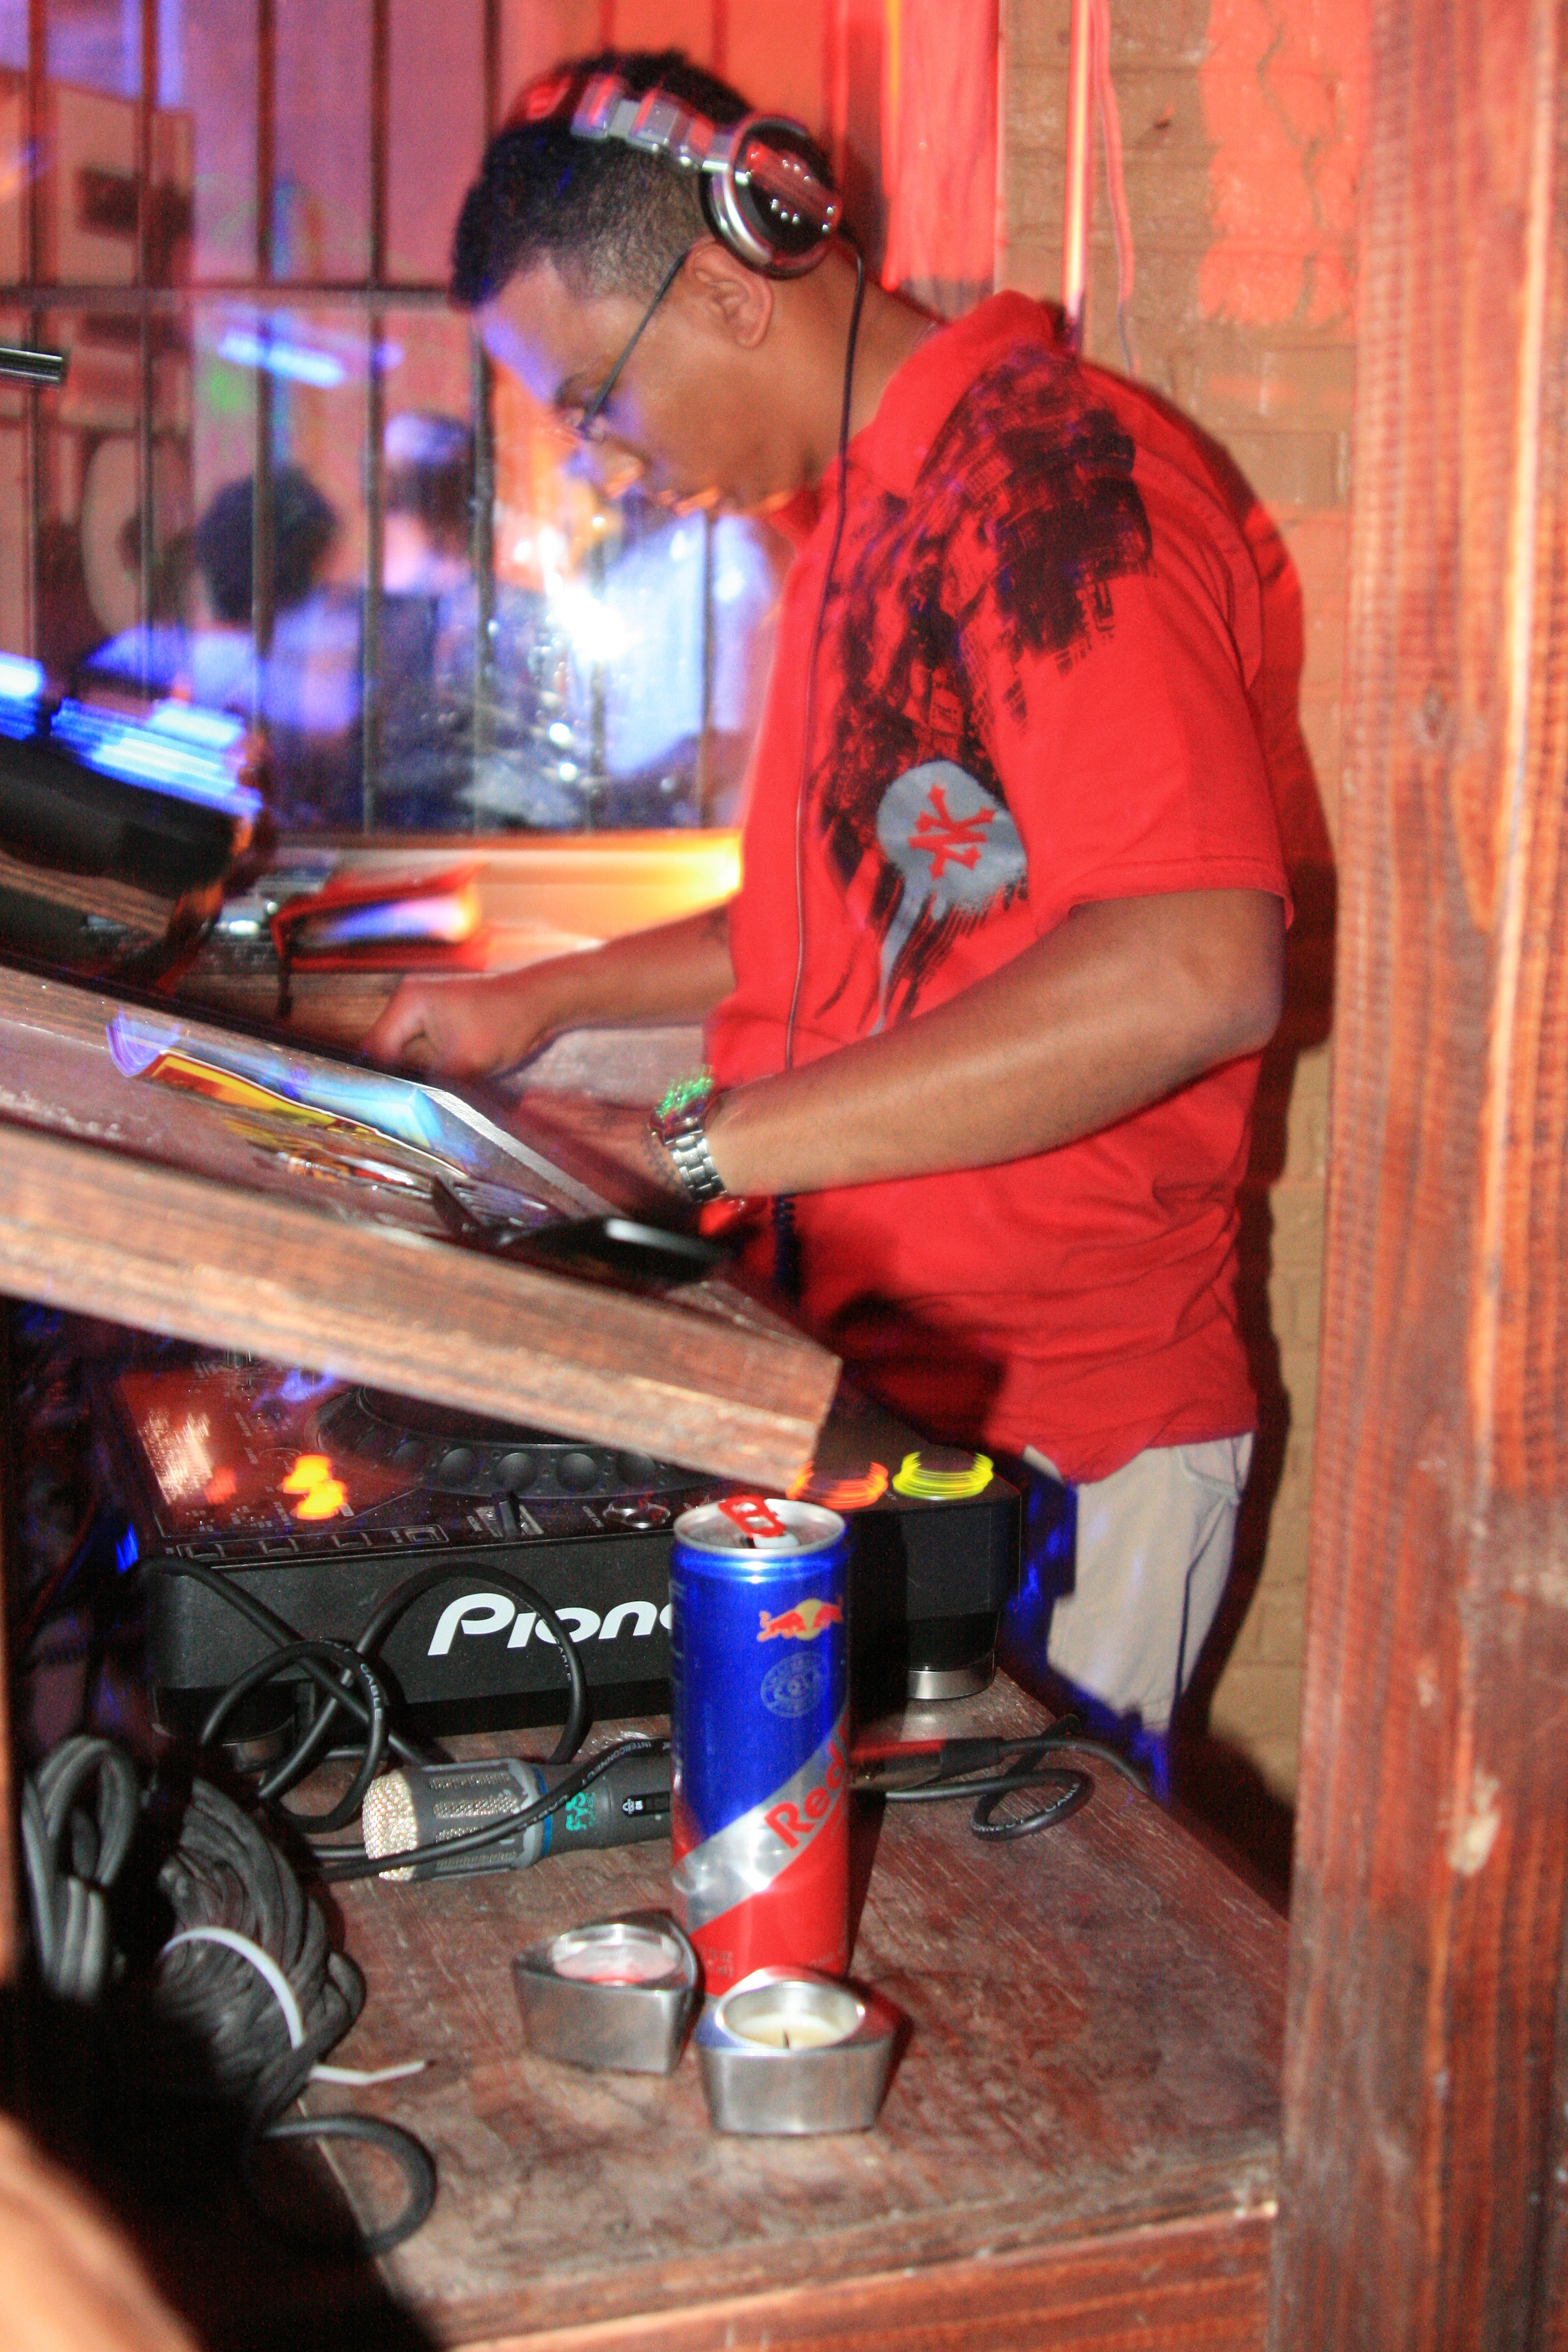 DJ Freedom providing house music for the Release party.